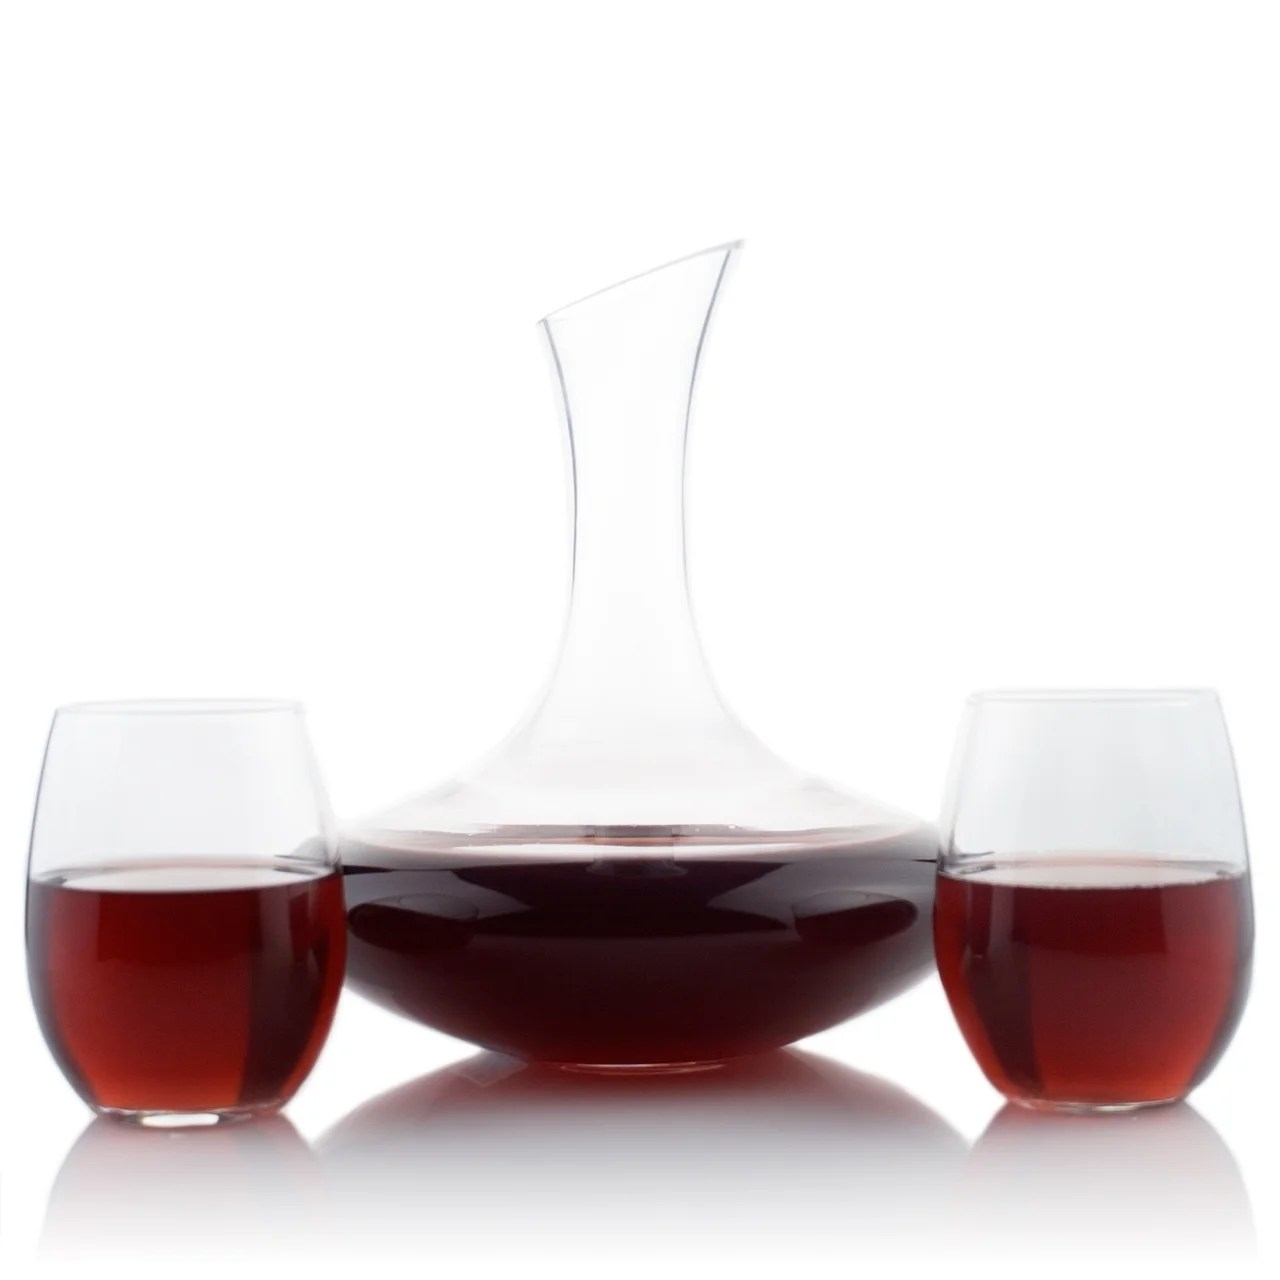 Decanter Wine Glas Slanted Top Glass Wine Decanter With 15oz Stemless Wine Glass Set